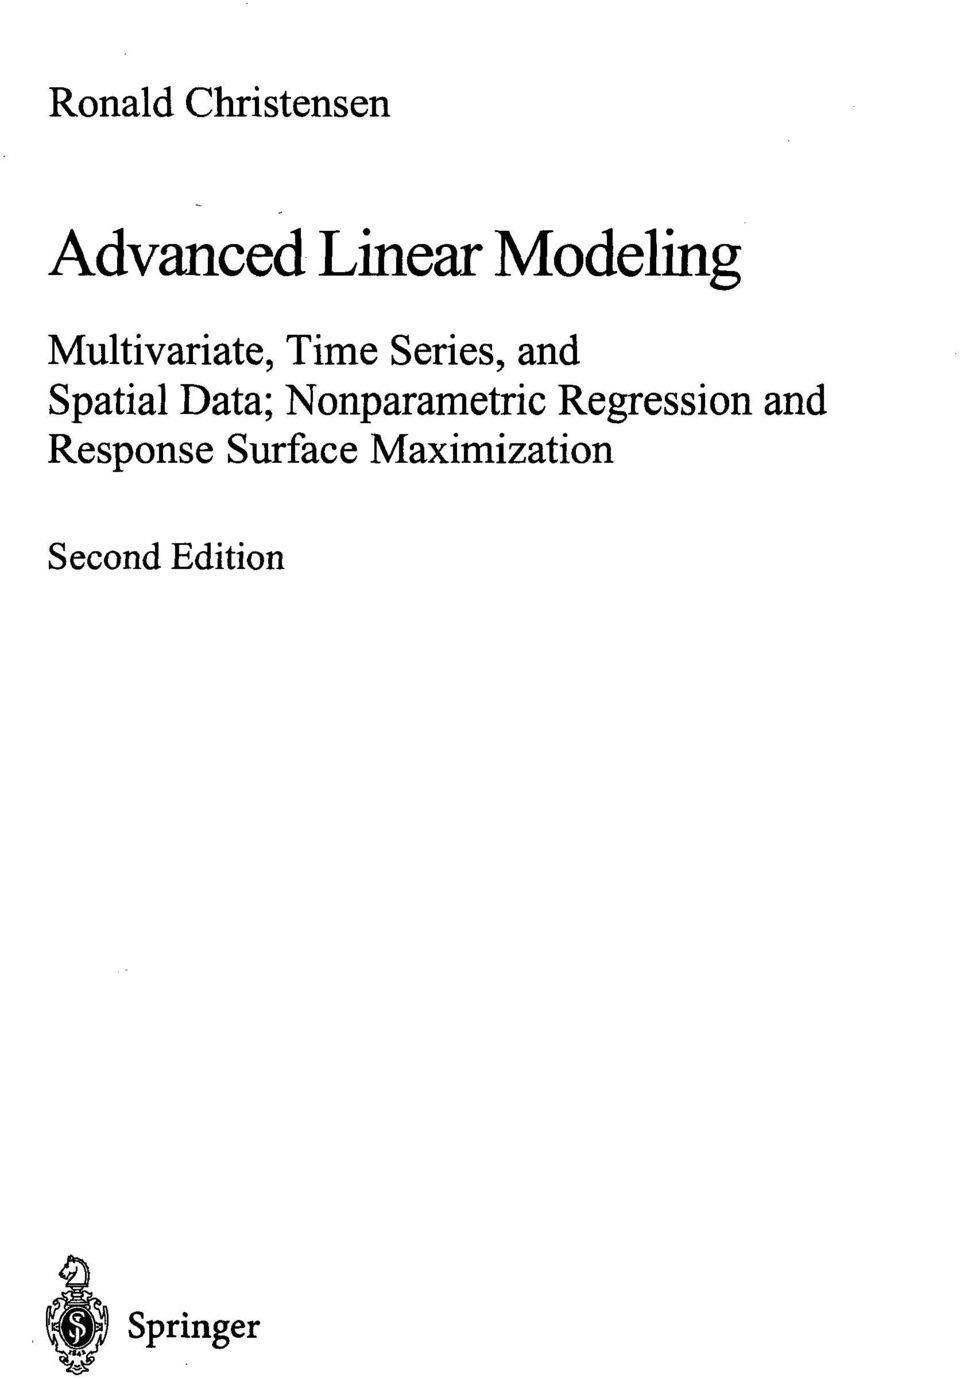 Spatial Data; Nonparametric Regression and